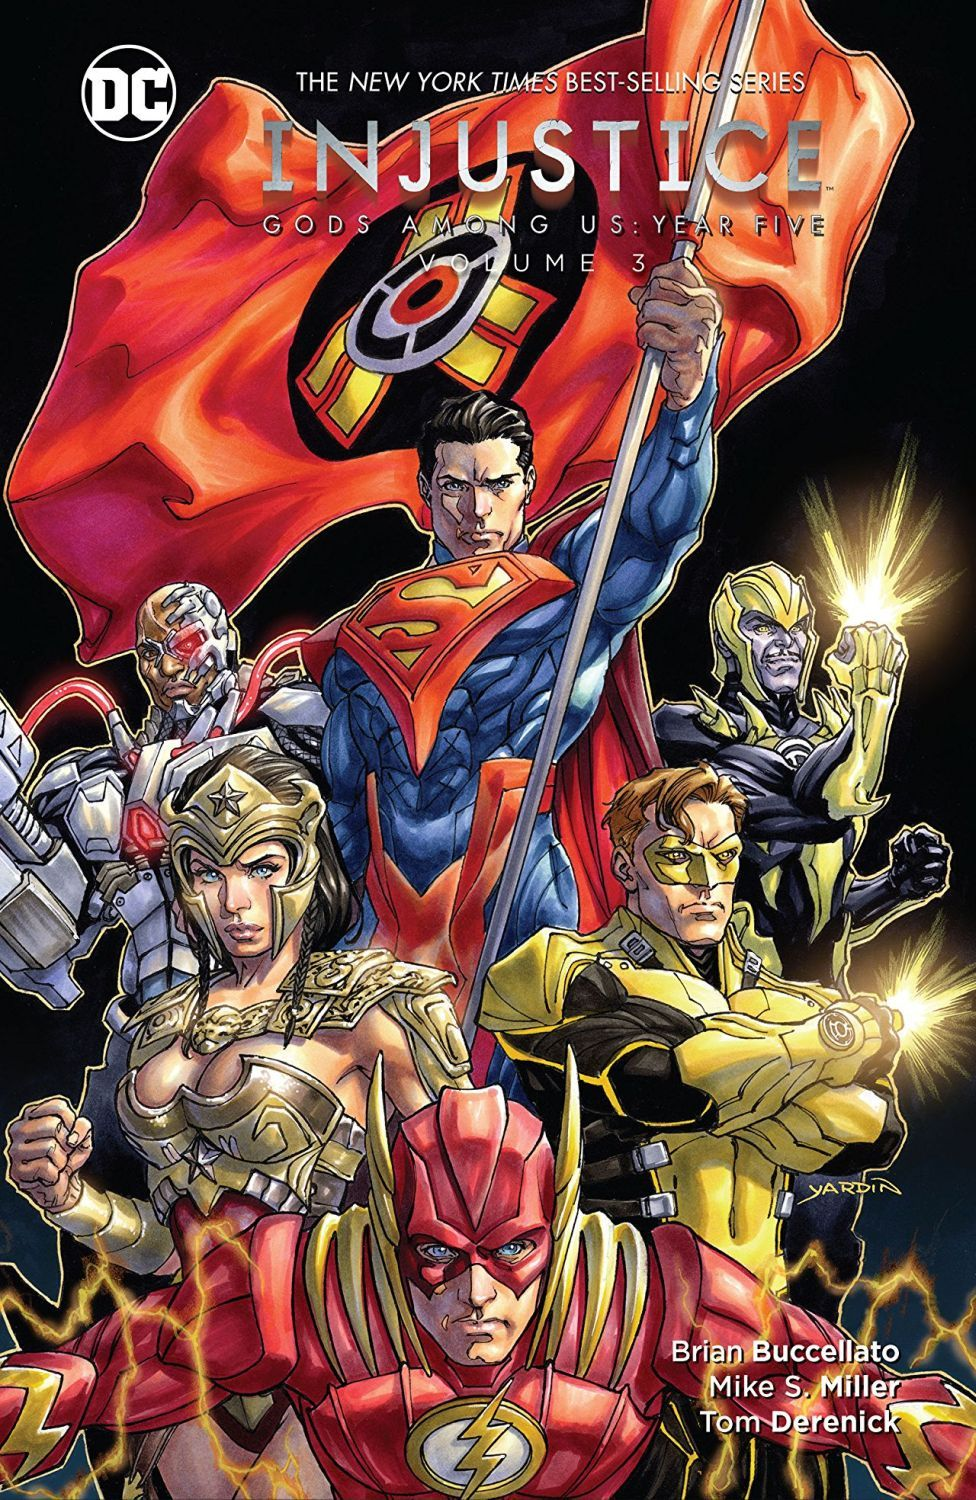 Injustice Gods Among Us Year Five Vol. 3 - 1